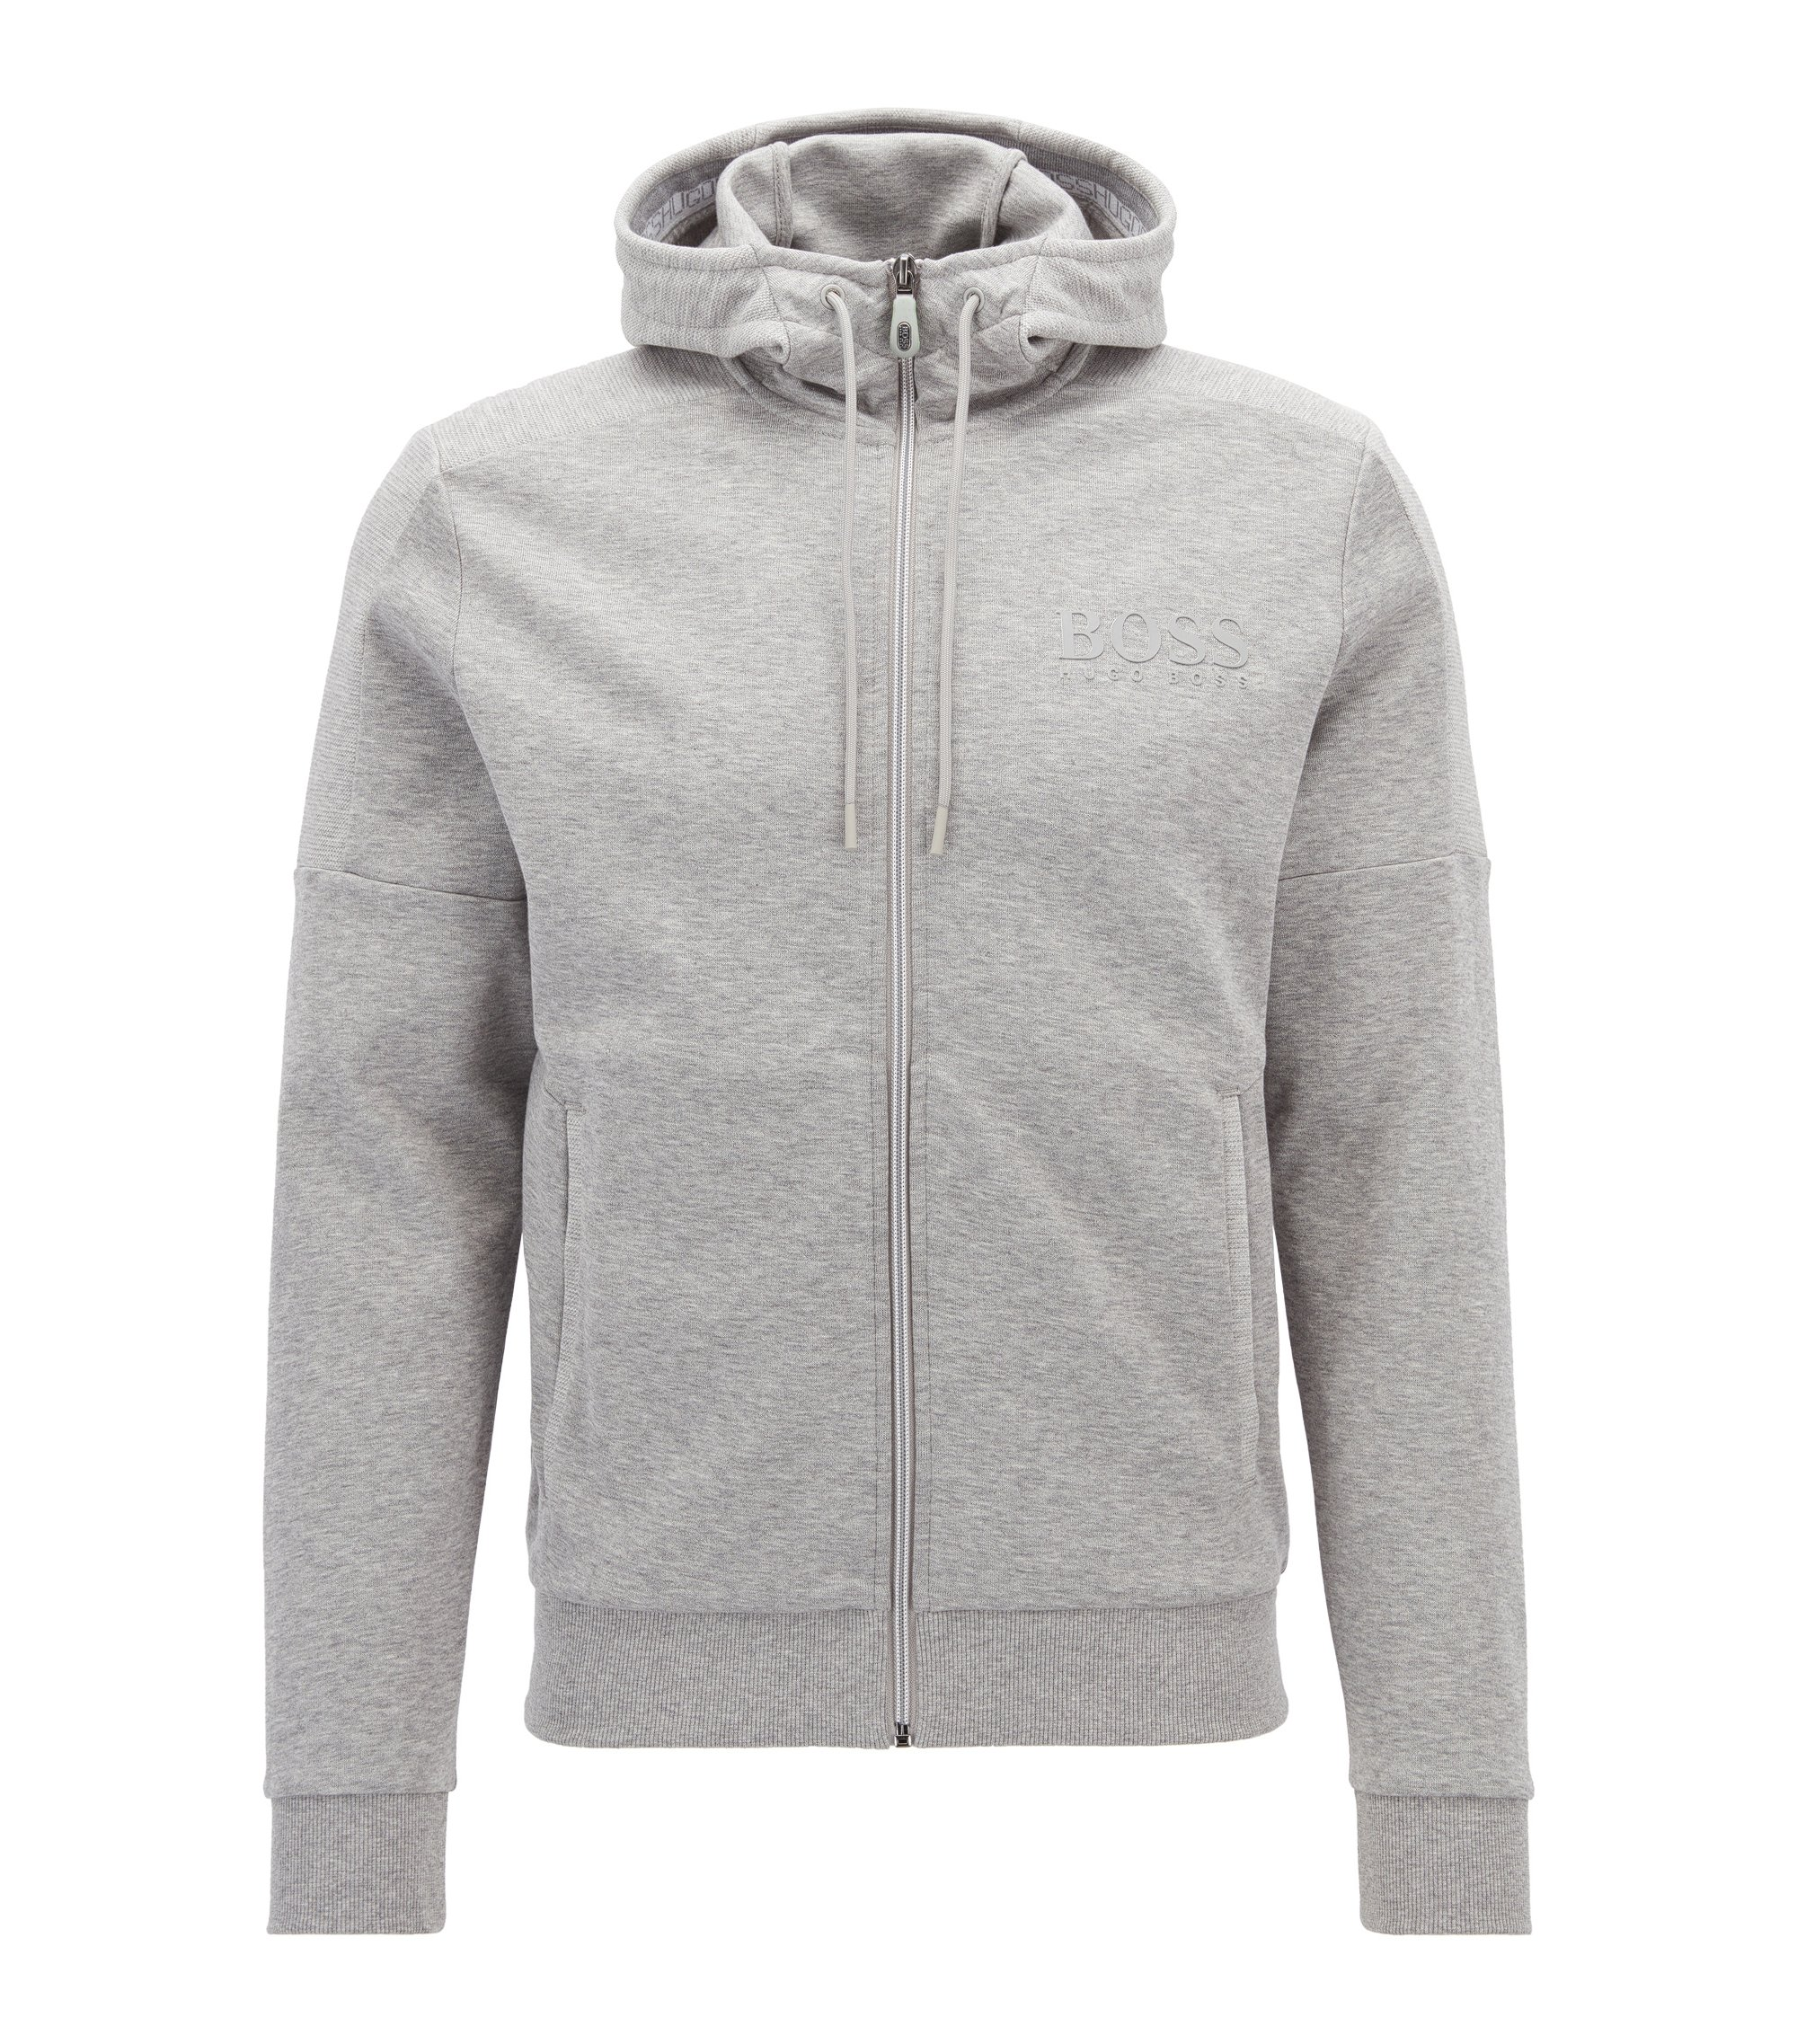 Veste Regular Fit en coton mélangé, Gris chiné